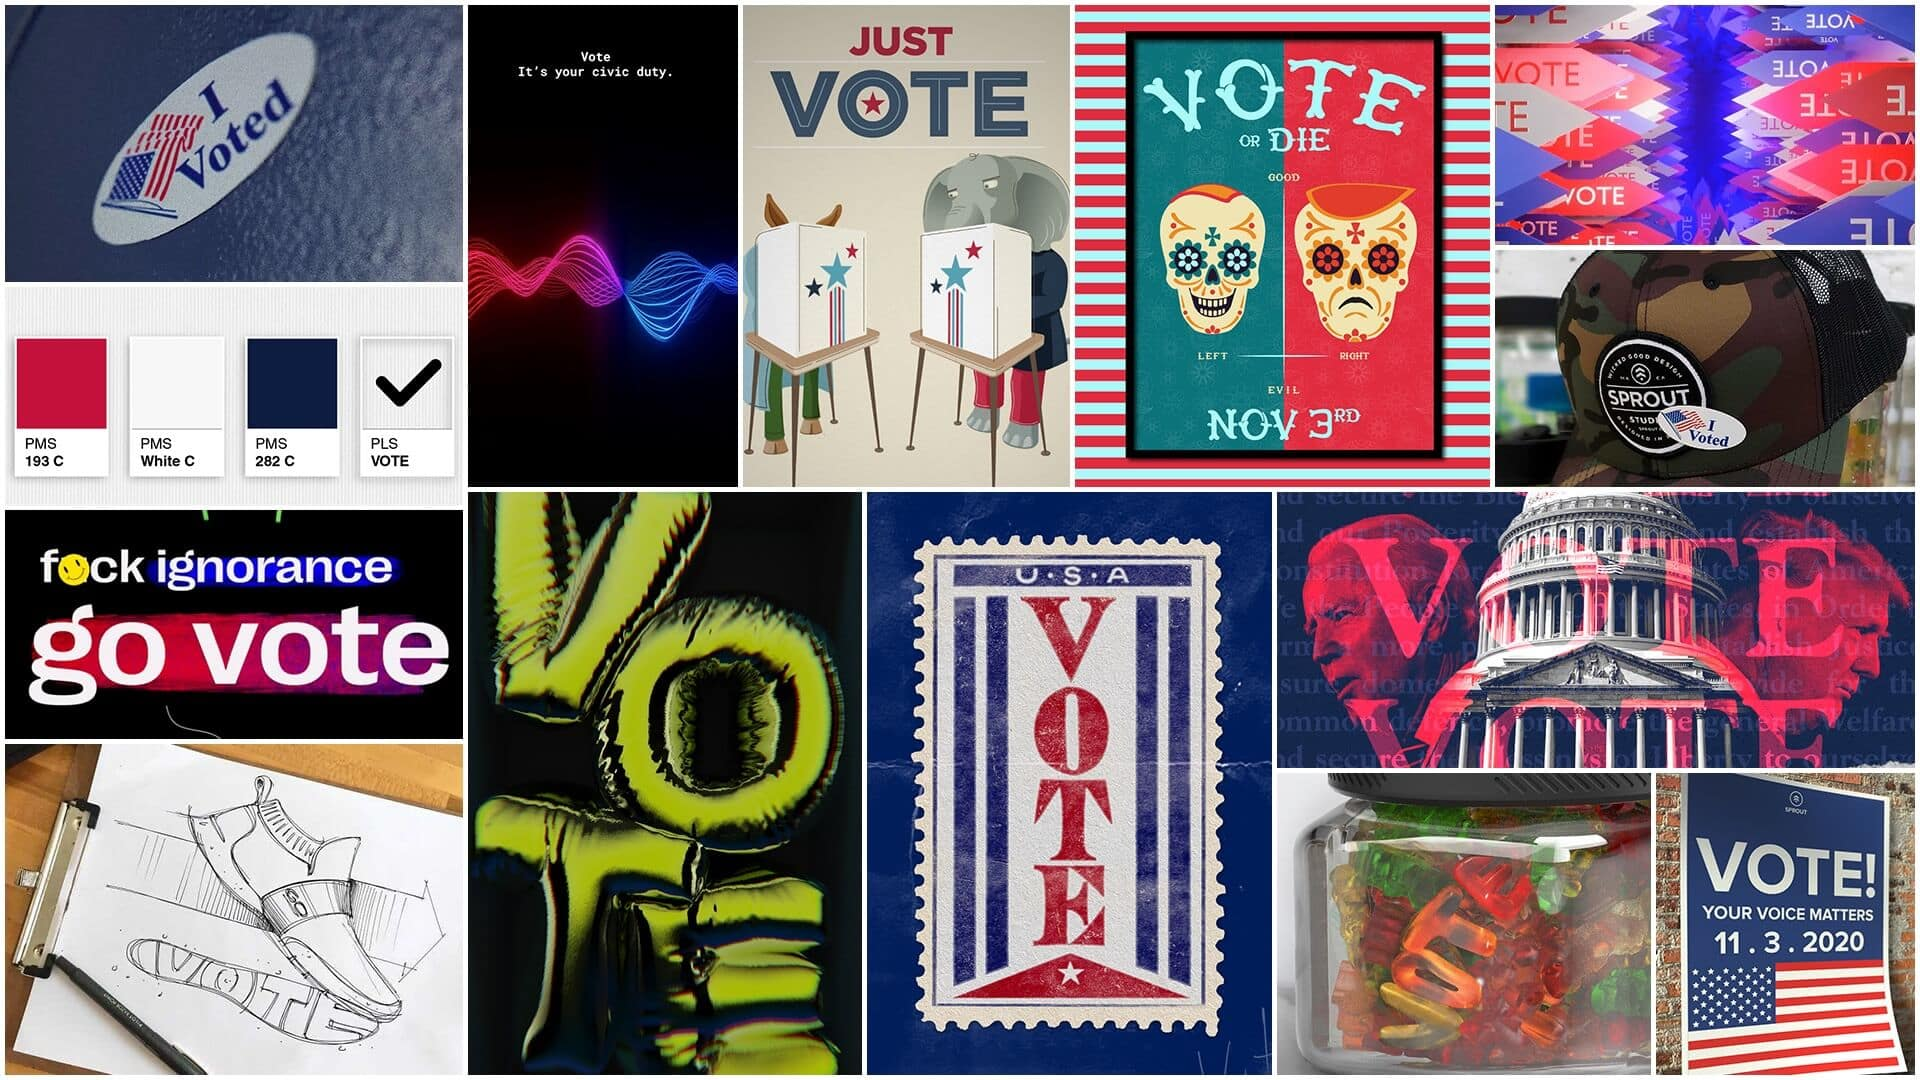 Collage of Vote Images